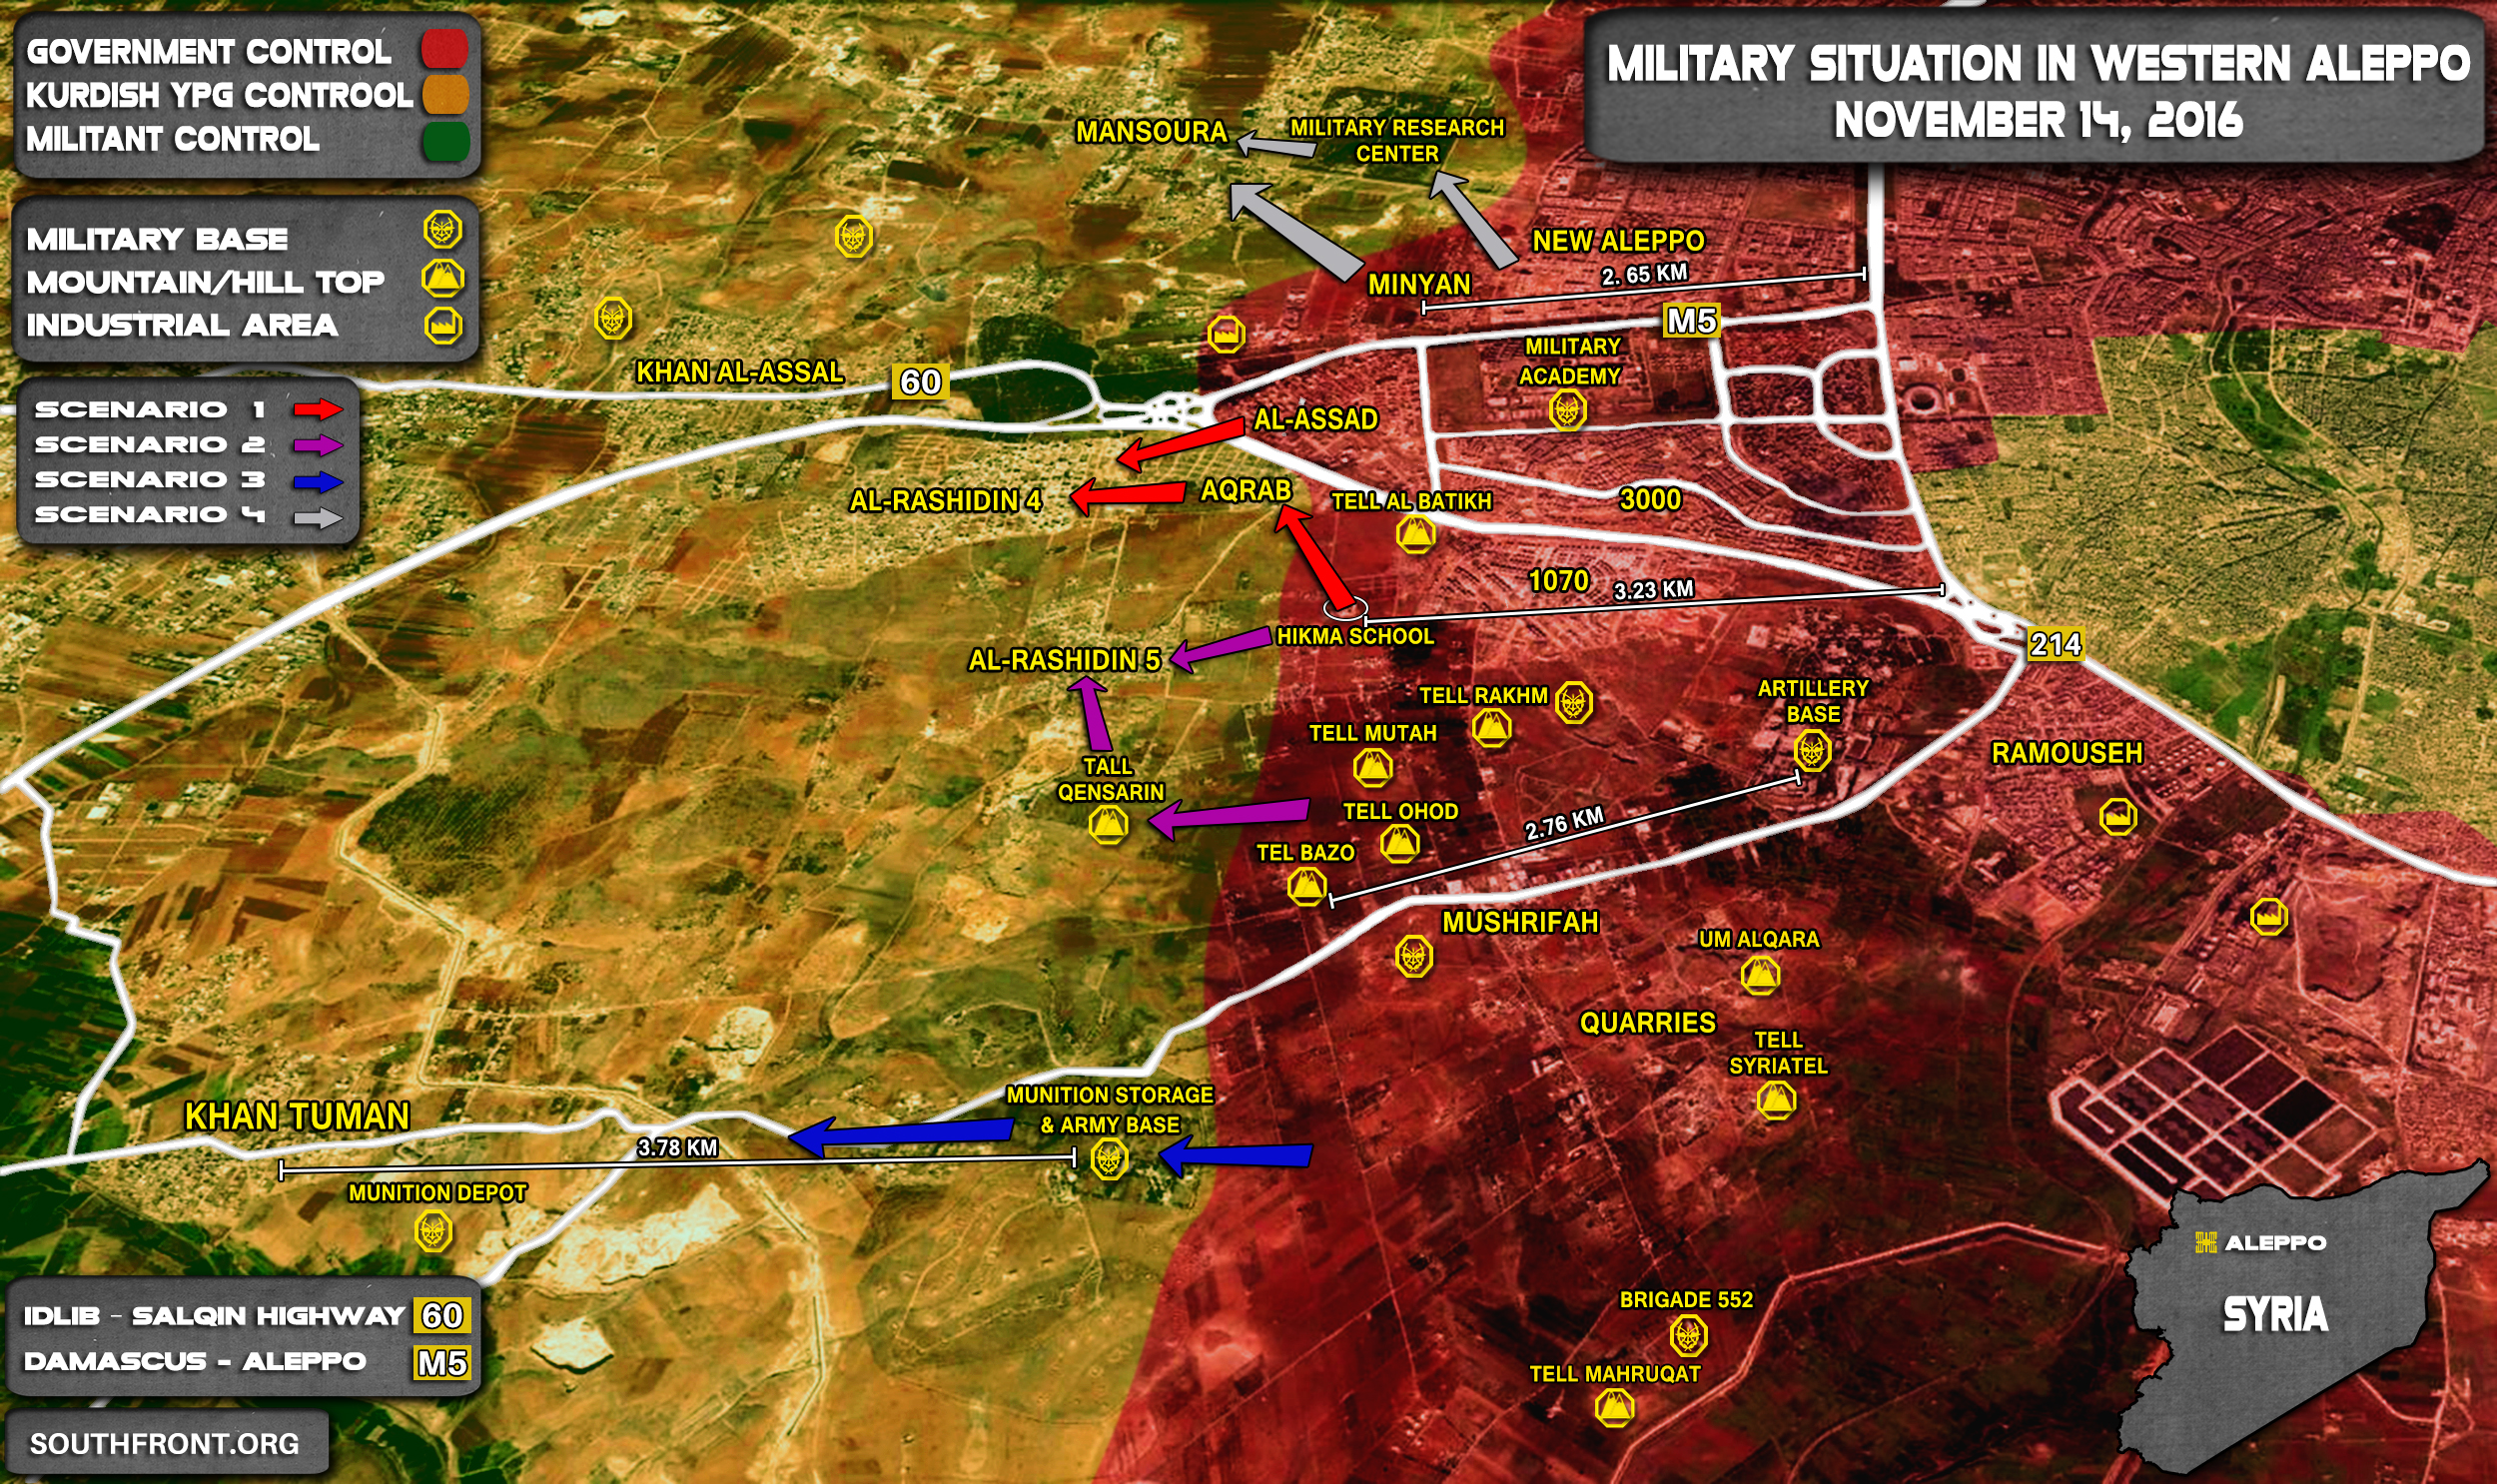 Overview of Military Situation in Aleppo City on November 16, 2016